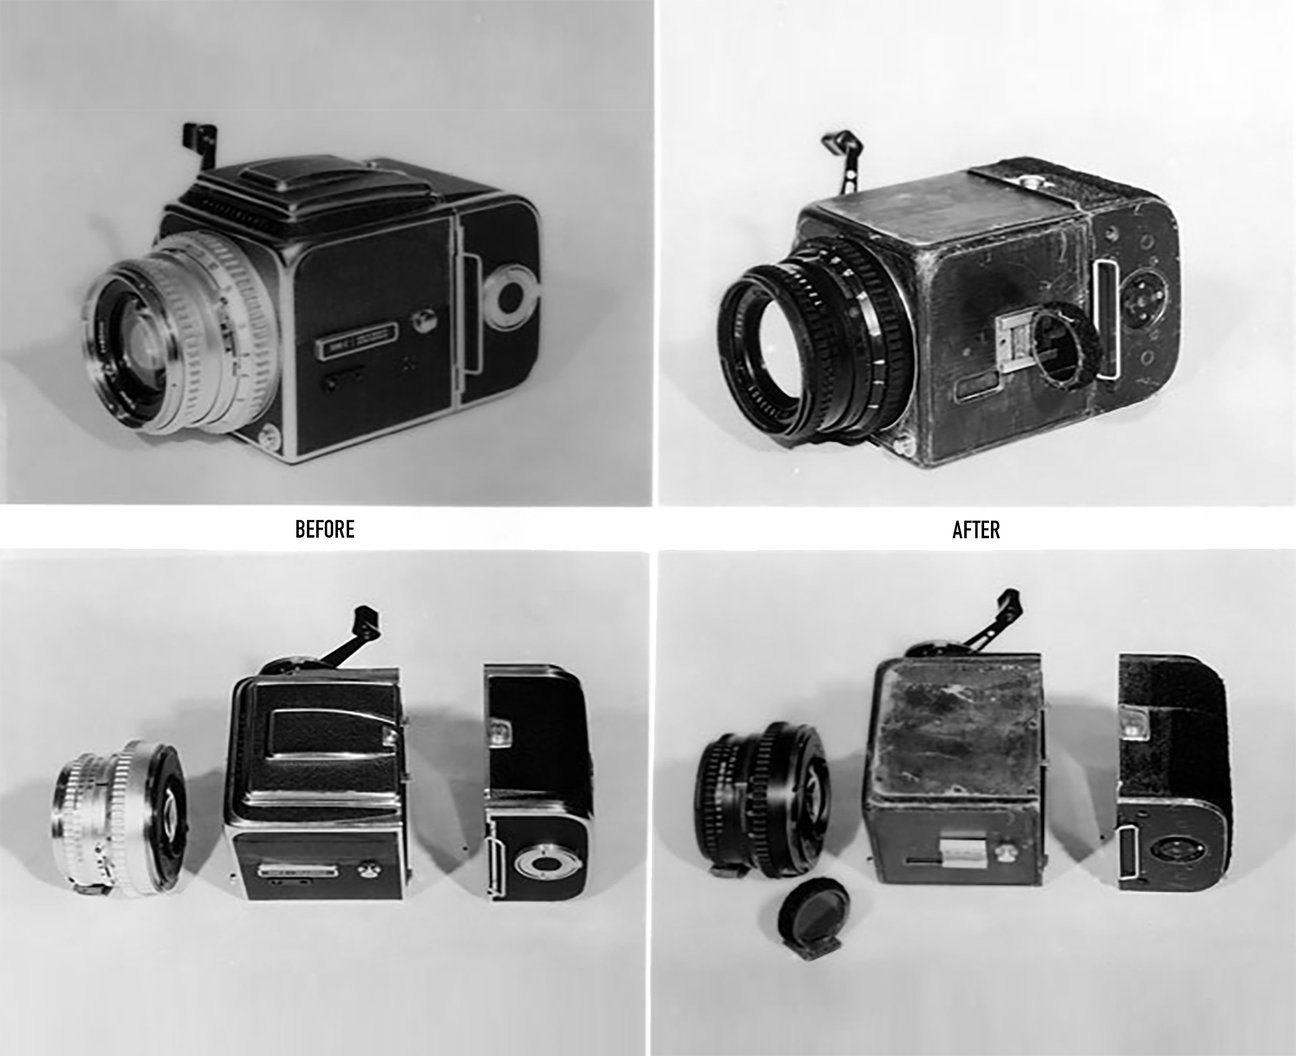 The original space-flown Hasselblad 500C, shown before and after. It now resides in a private collection.